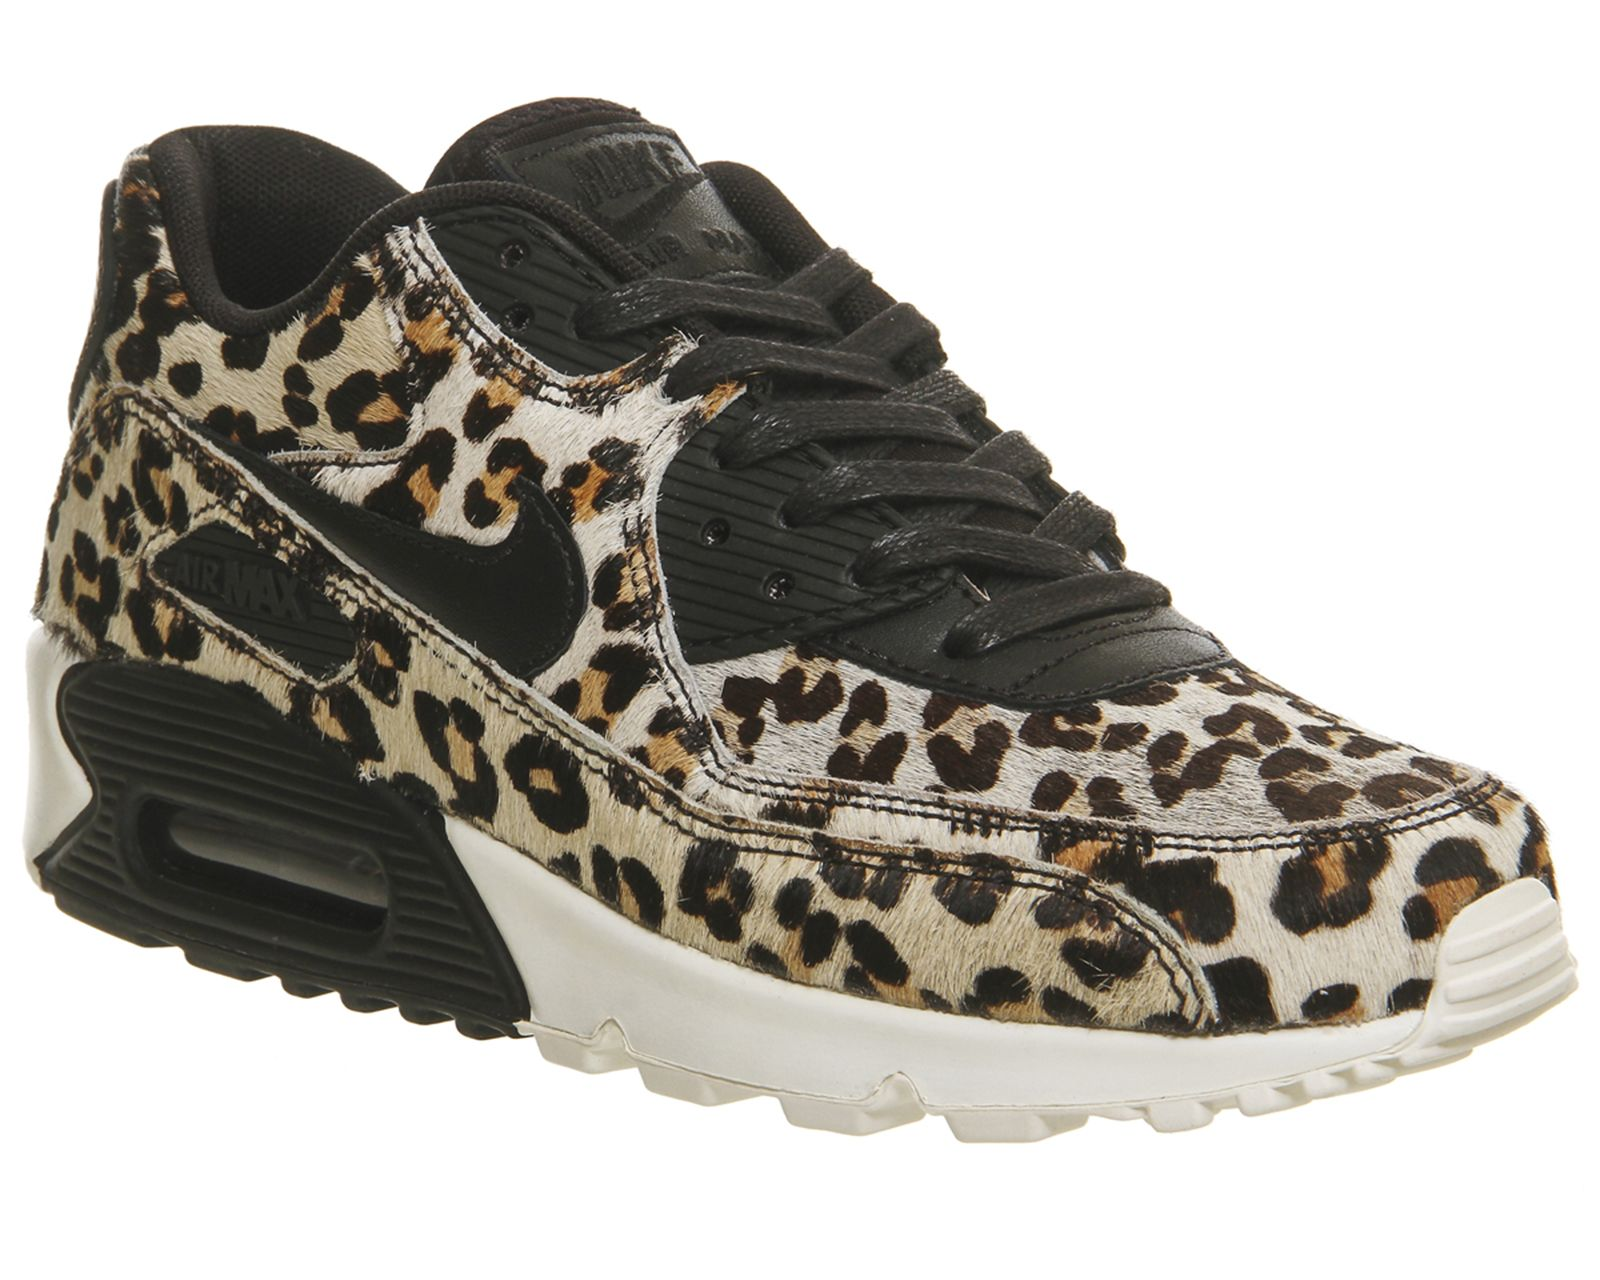 Air Max 90 Snow Leopard Black Sail in 2019 | Nike air max